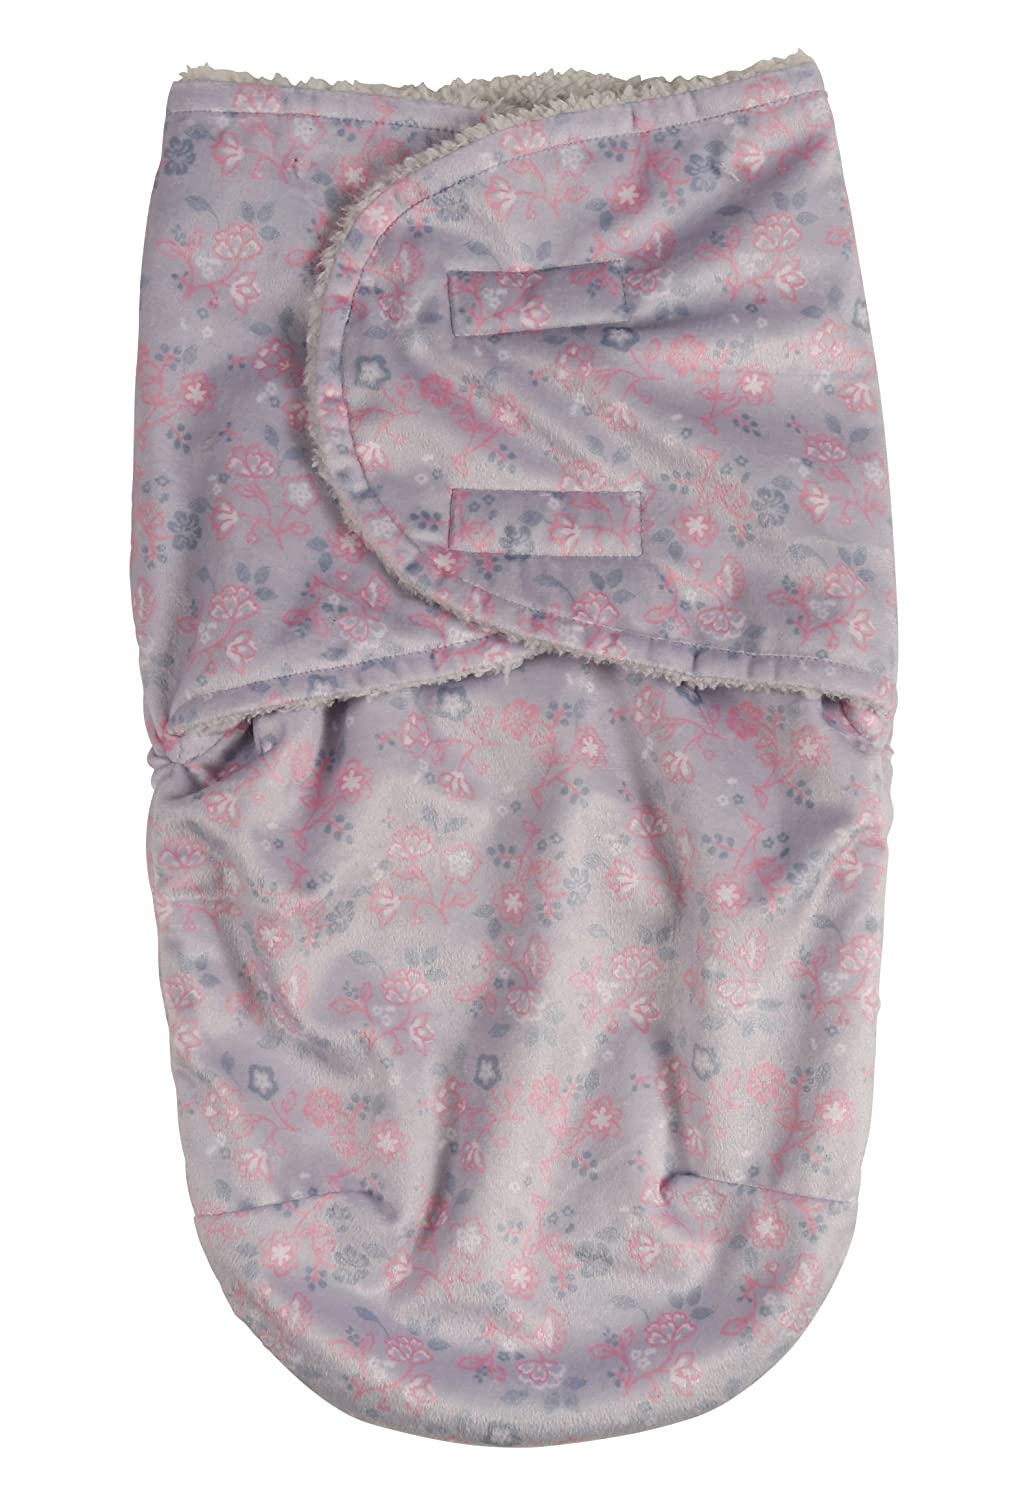 Laura Ashley Infant Swaddle Sack Gray Floral Print on Mink with Sherpa Lining GS70807